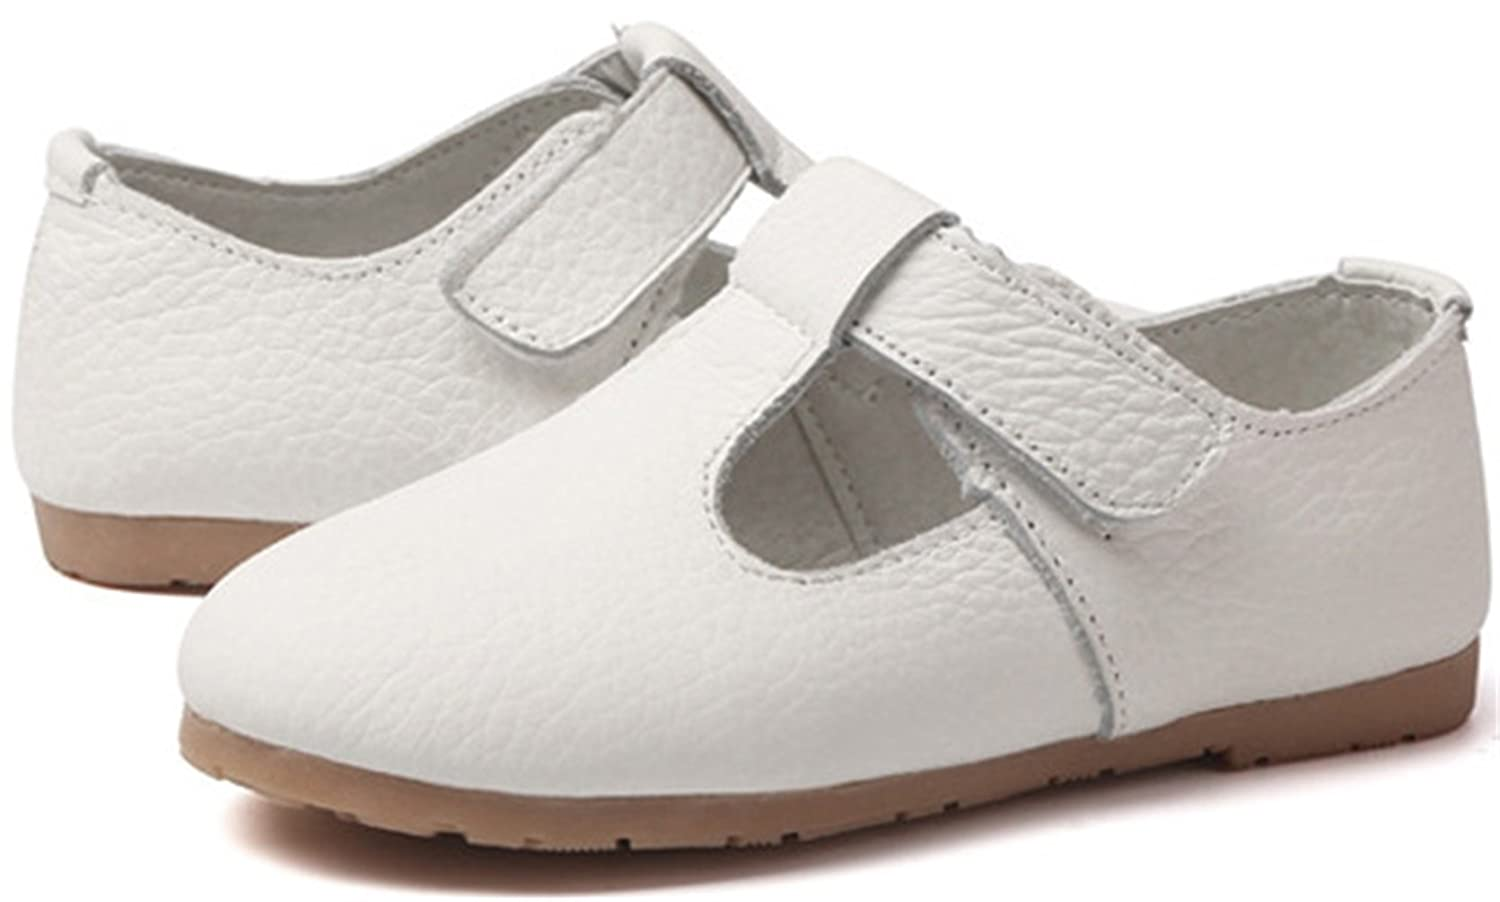 PPXID Girls Sweet Soft Leather T-Bar Flat Oxford Shoes